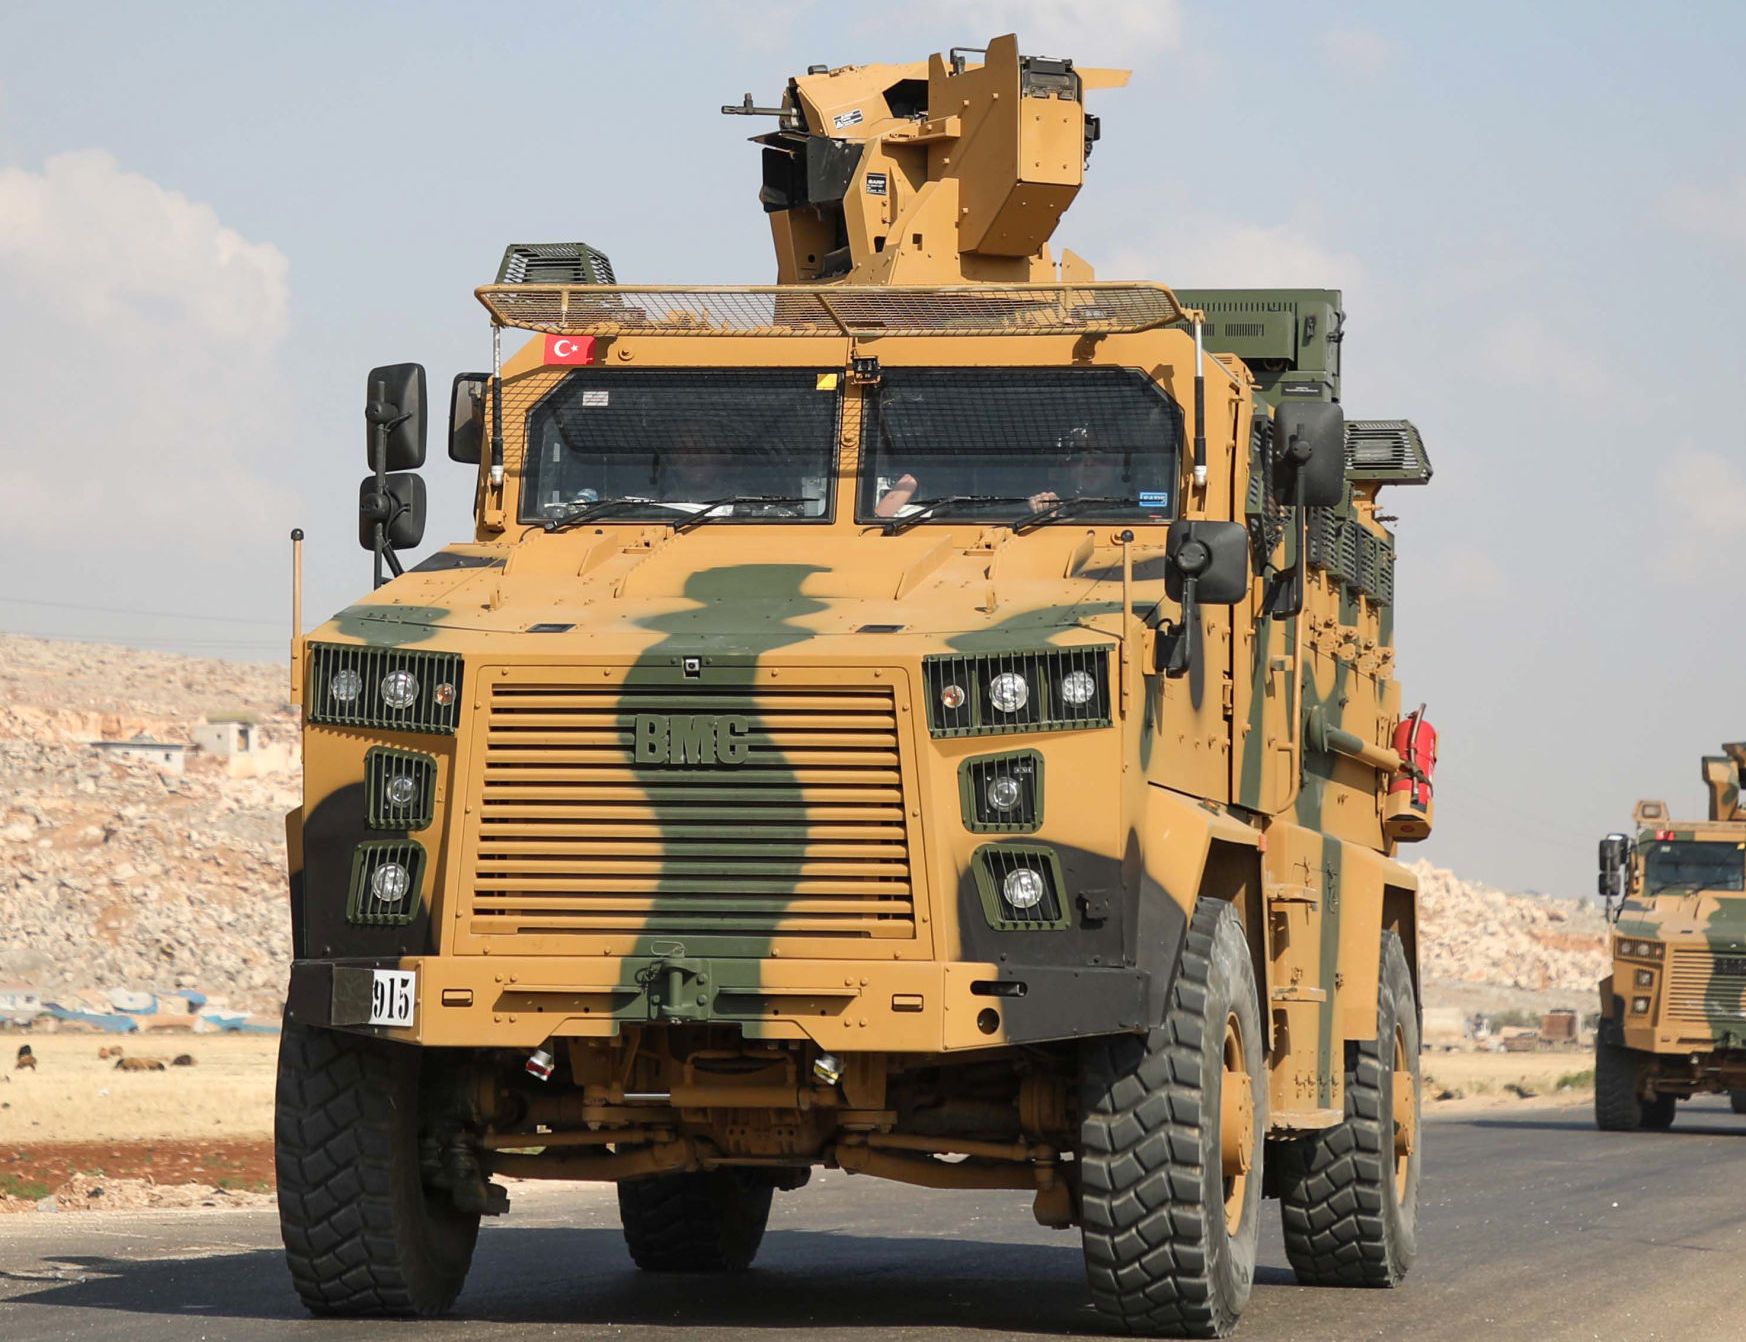 A convoy of Turkish armoured vehicles drive towards Bab al-Hawa crossing point between Syria and Turkey on a highway in the northern countryside of the Syrian province of Idlib on June 20, 2019.